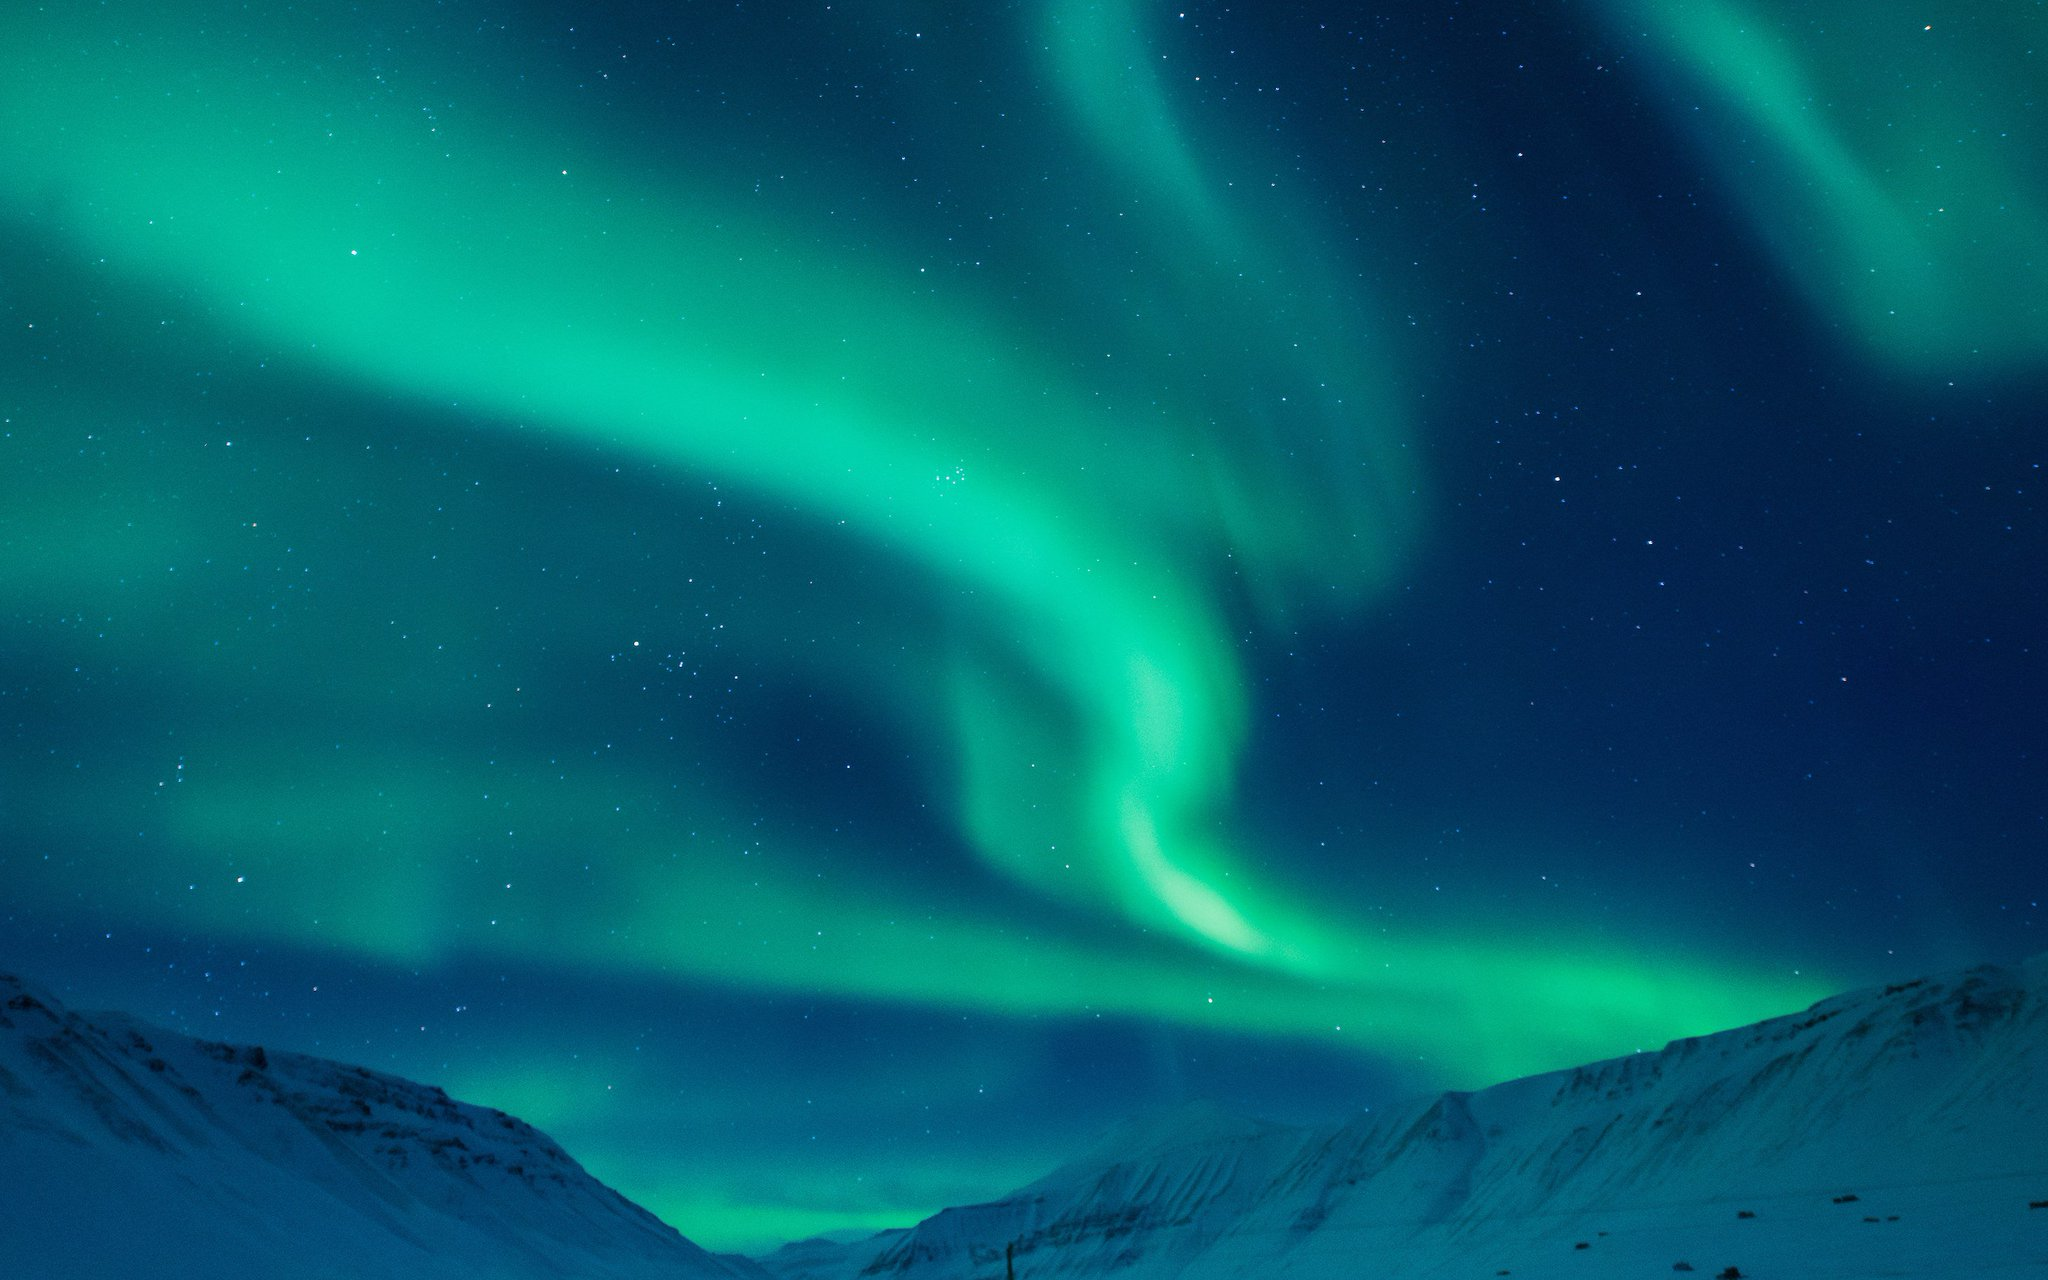 This new tour is dedicated to seeing the Northern Lights 24/7 https://t.co/vRNS9GzZaC https://t.co/3rmMpakVGl